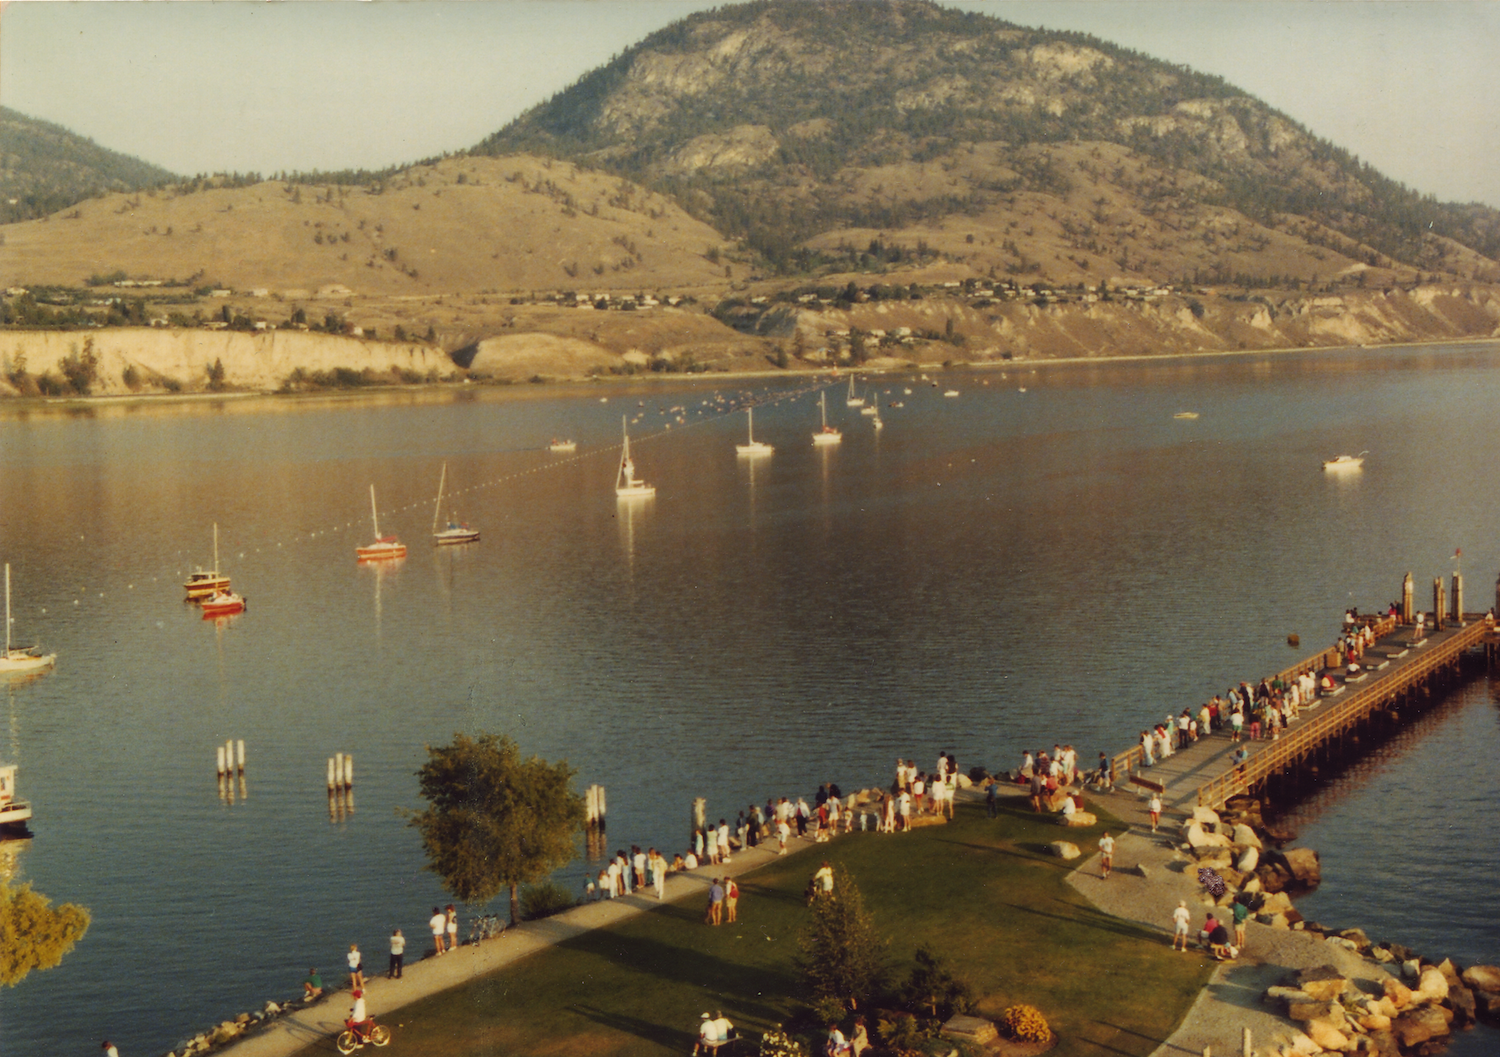 Swim portion of the 1983 Ironperson.The swimmers can be seen in the middle of the photo.